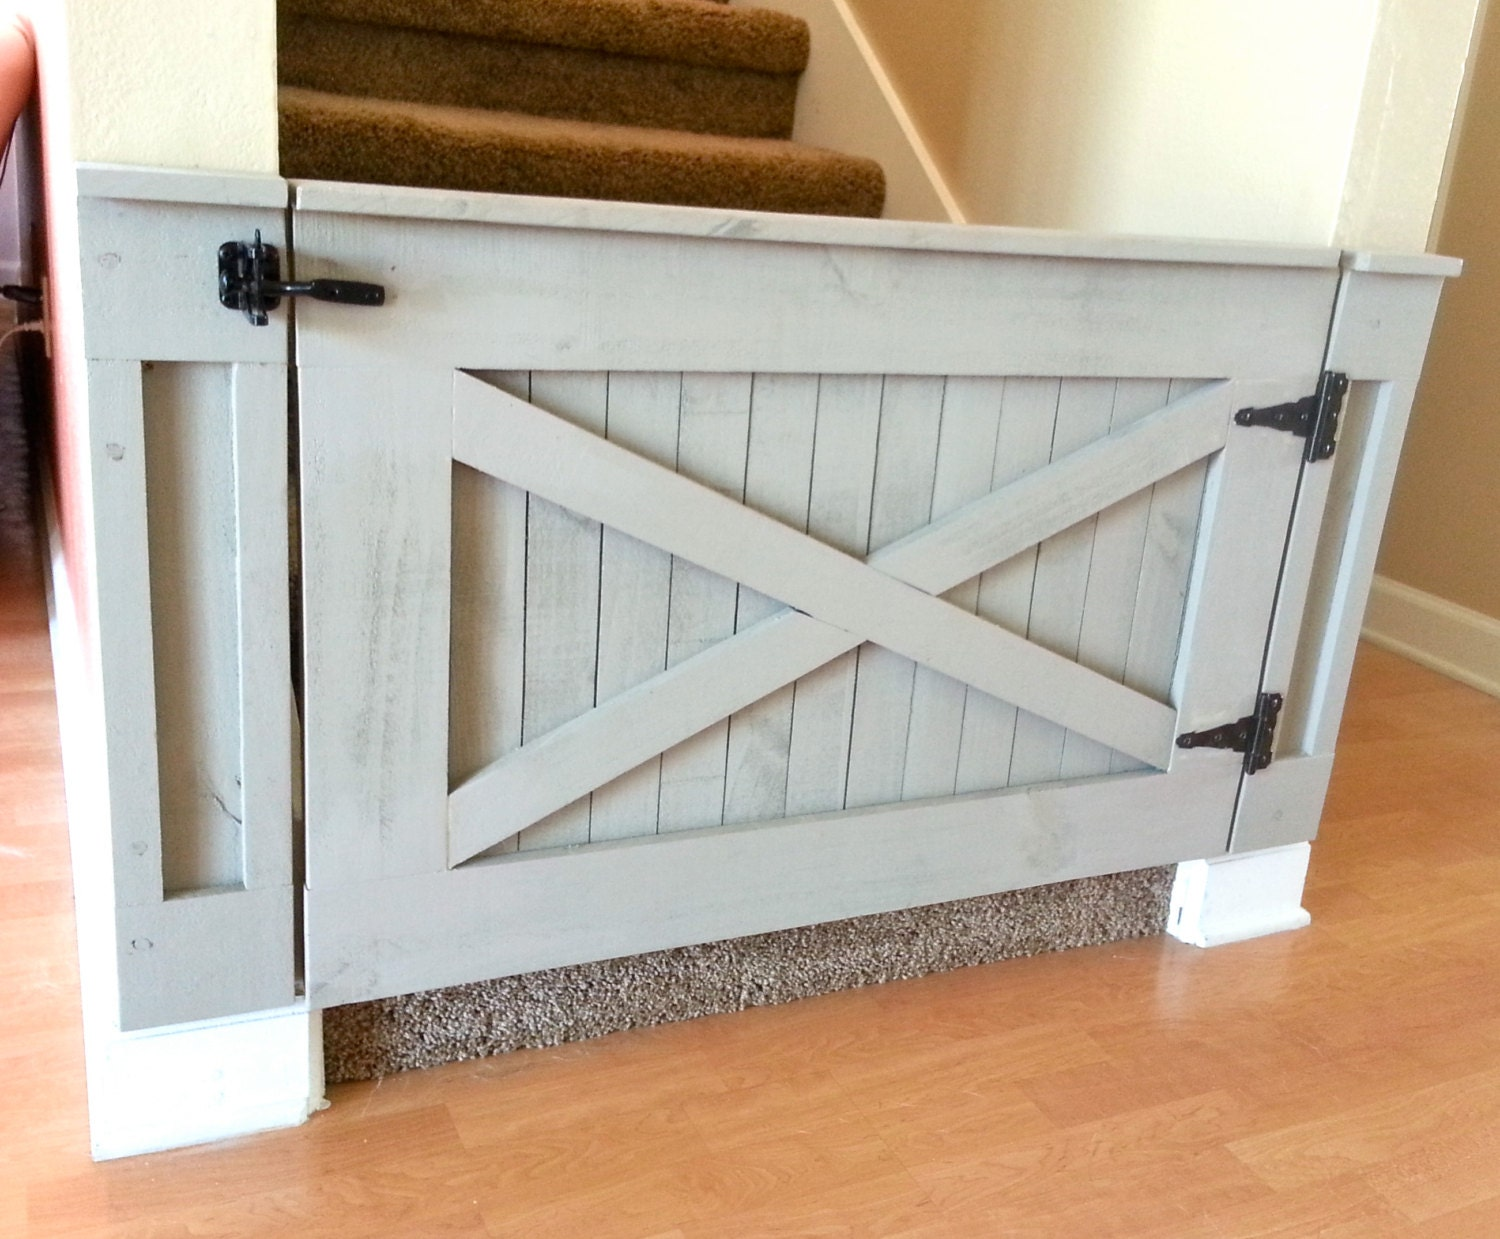 ... Baby Gate additionally Pinterest Barn Door Baby Gate. on baby gate